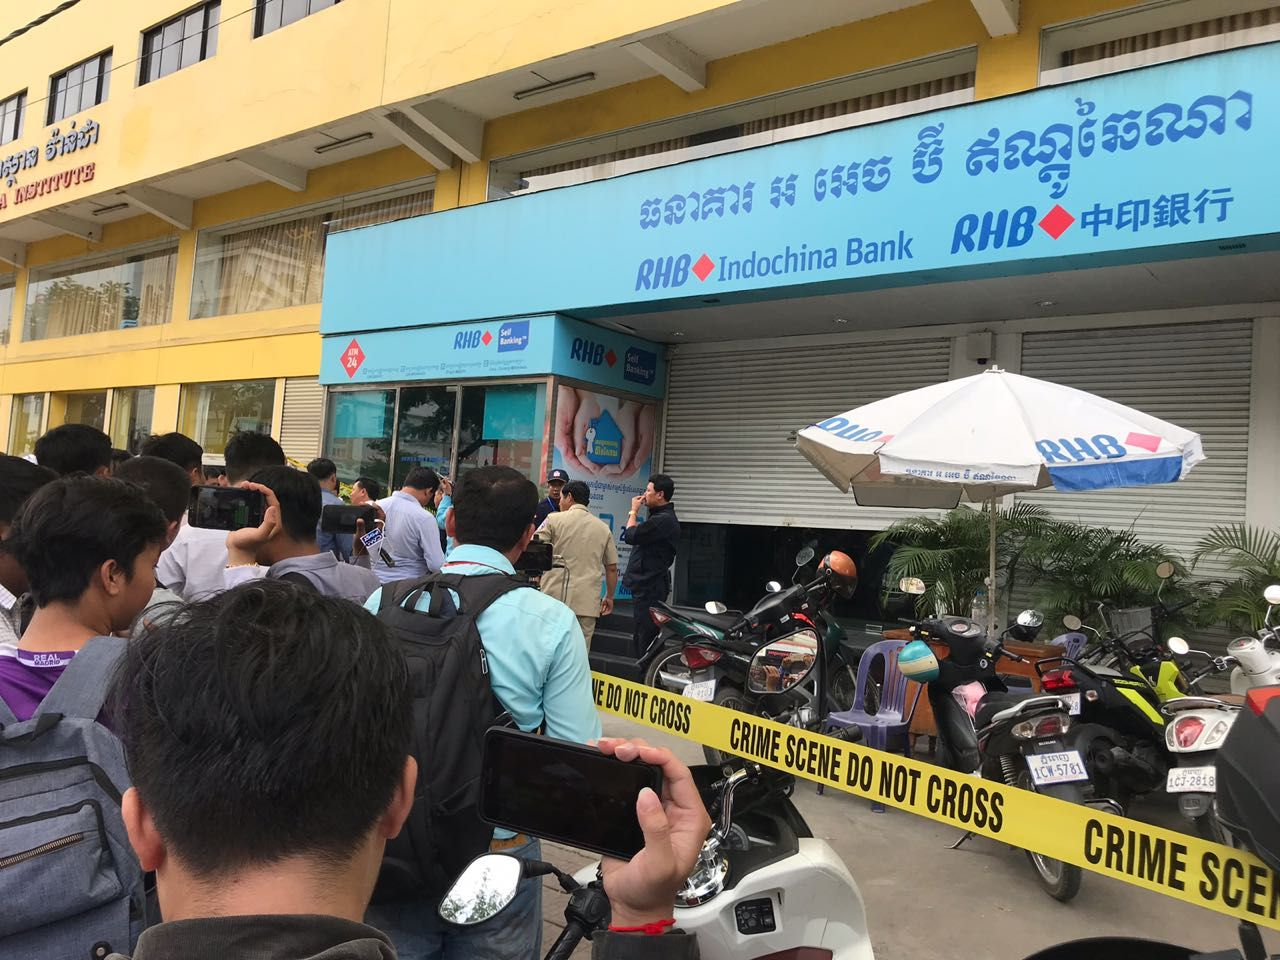 Armed robbers hit bank in Phnom Penh, $100,000 looted